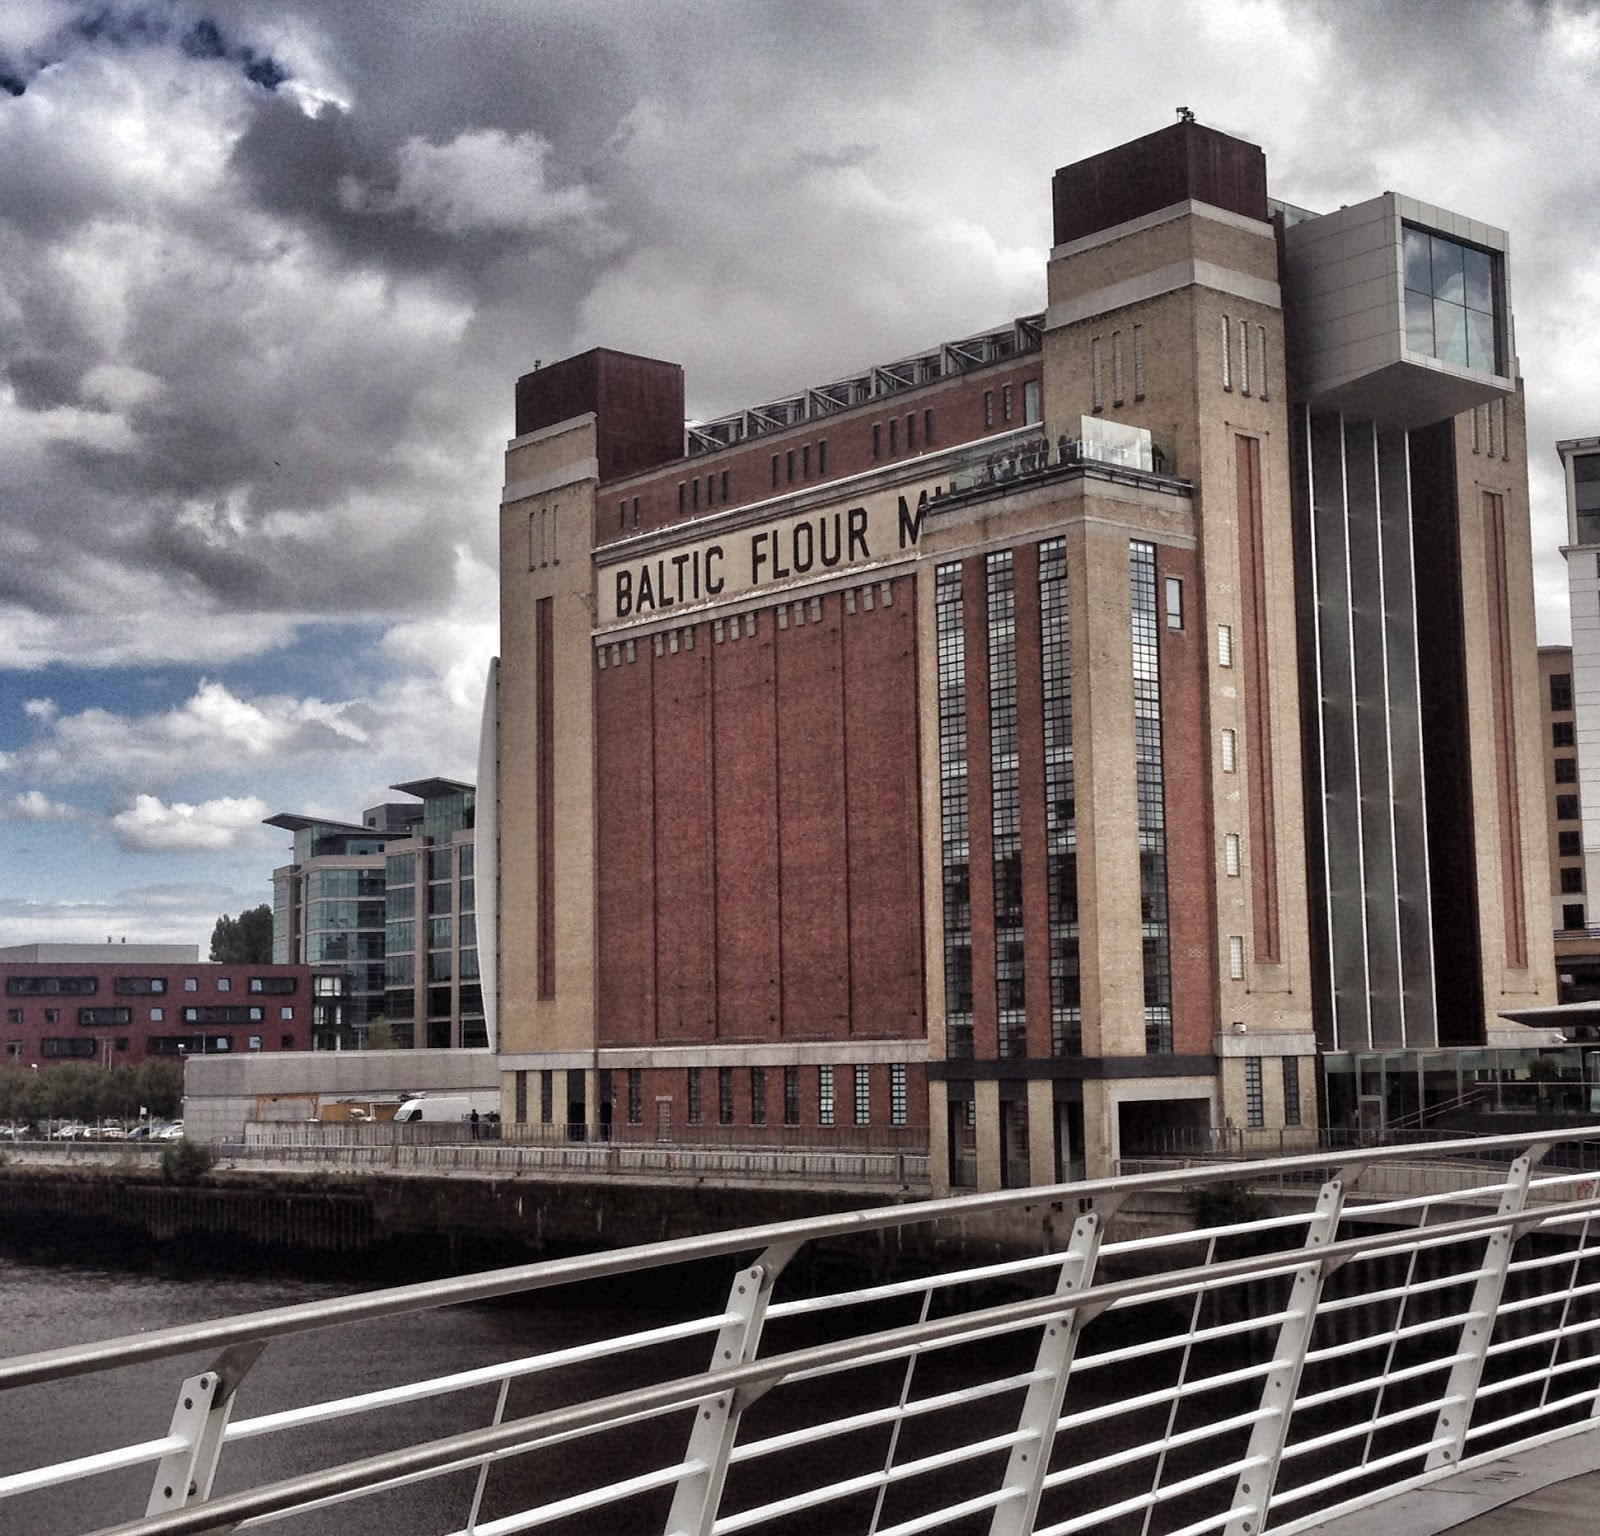 10 Places To Visit | Newcastle - Gateshead Quayside - Baltic